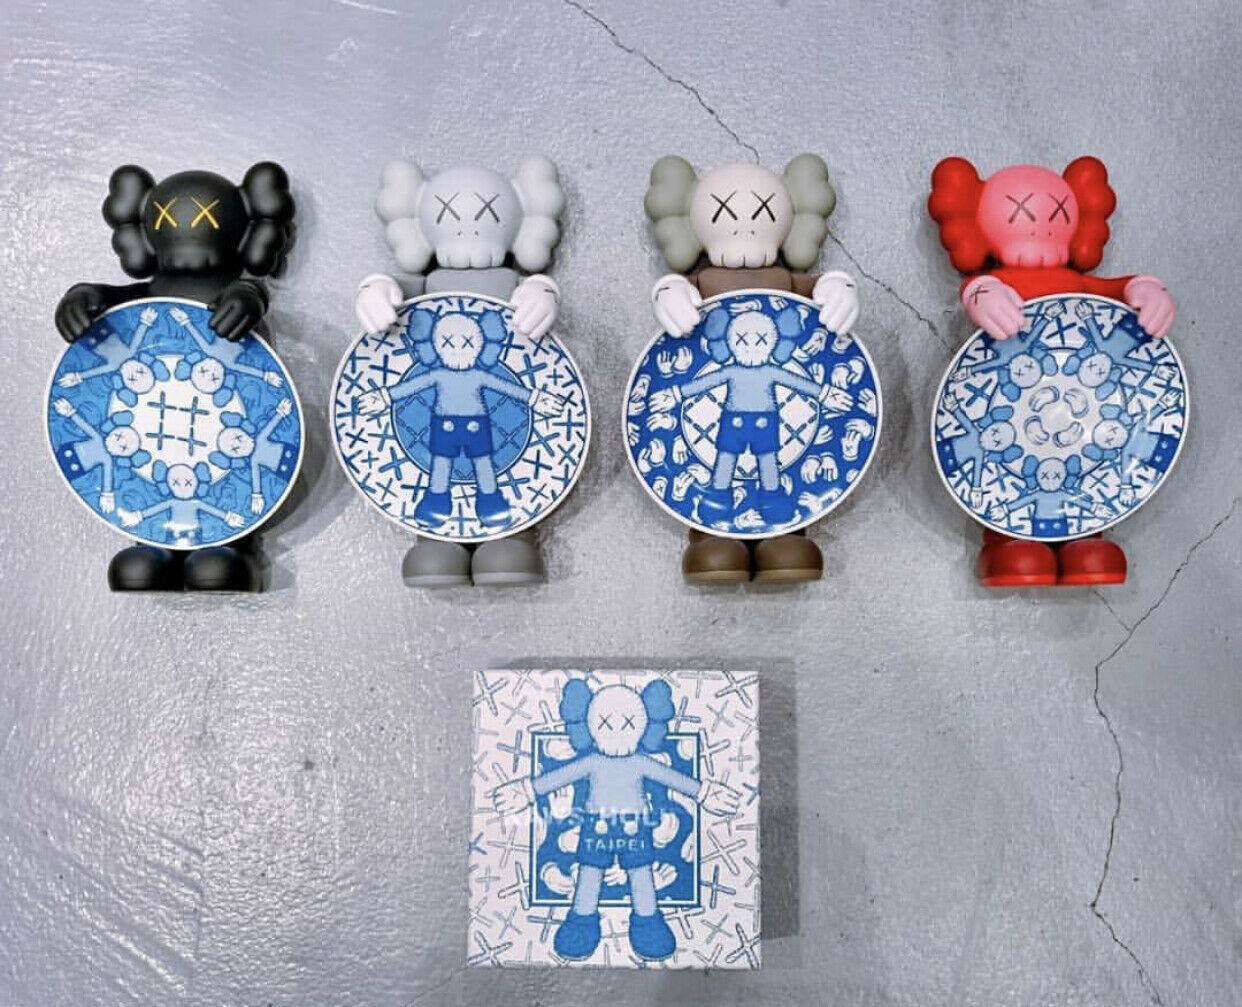 Kaws 2019 Holiday Limited Limited Limited Edition Taipei Companion Ceramic Plate Set Sold Out    76e577